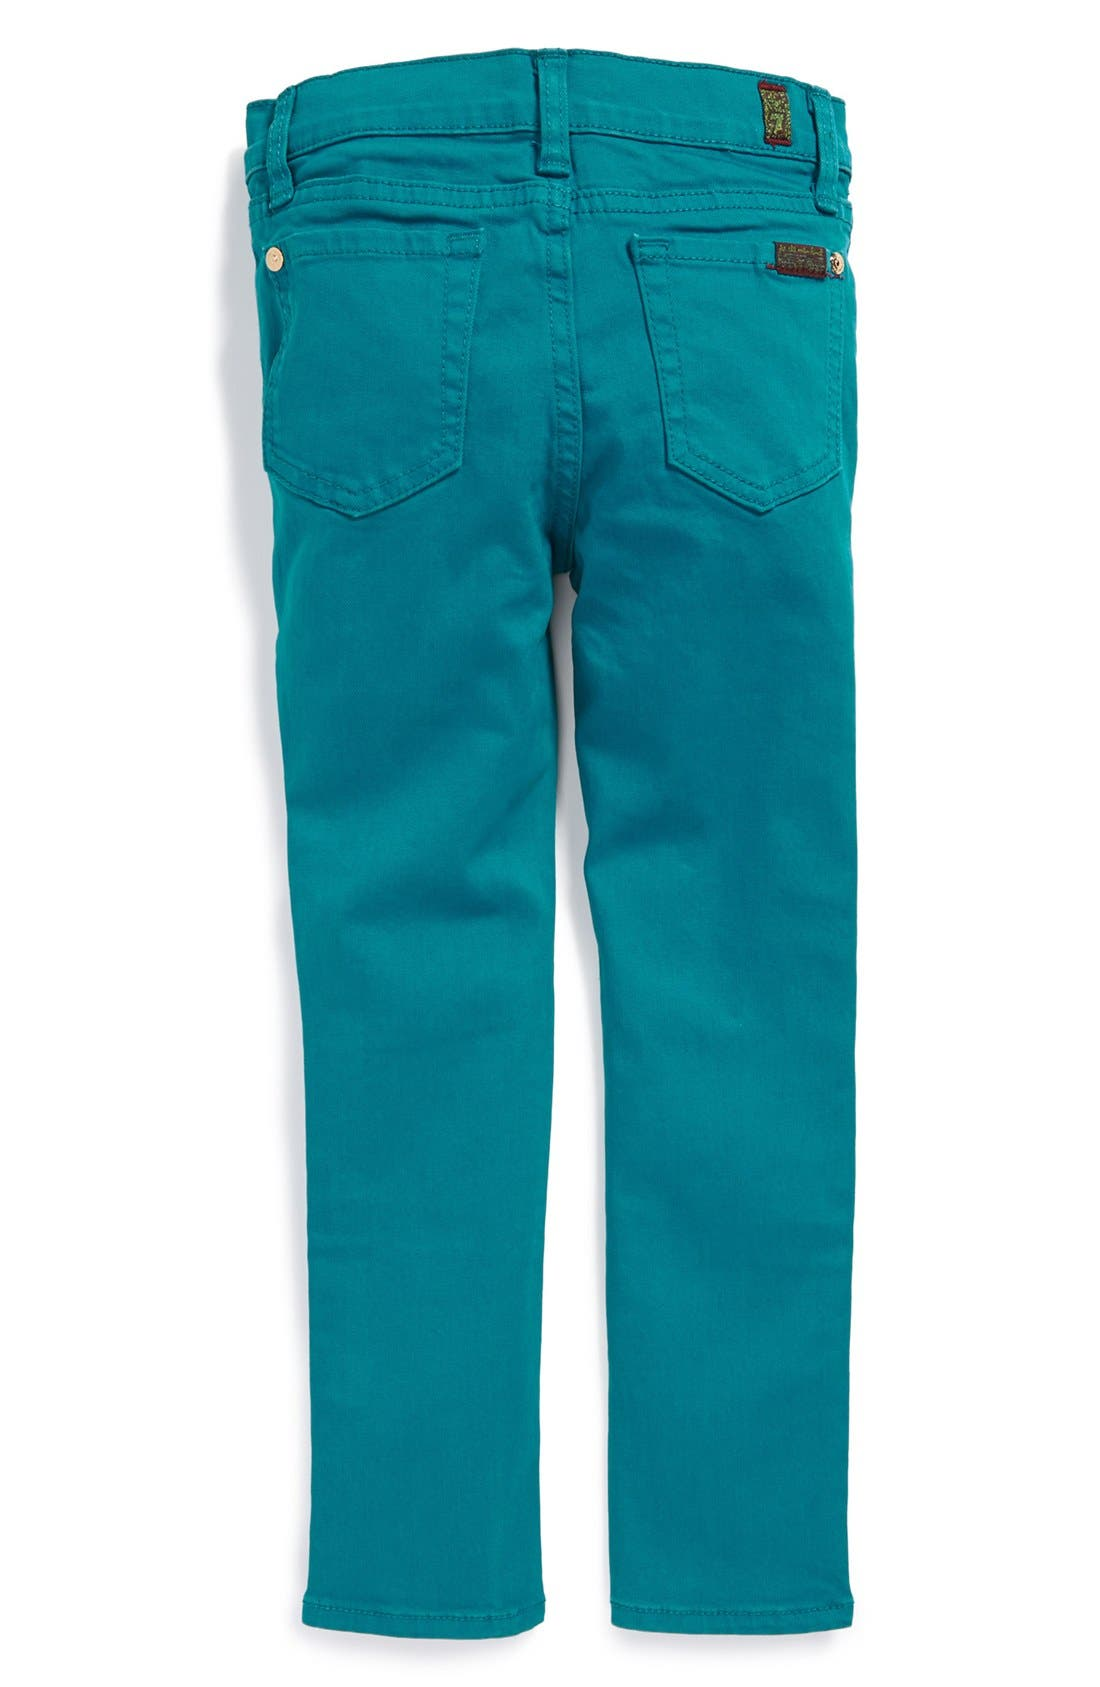 Main Image - 7 For All Mankind® 'The Skinny' Stretch Jeans (Big Girls)